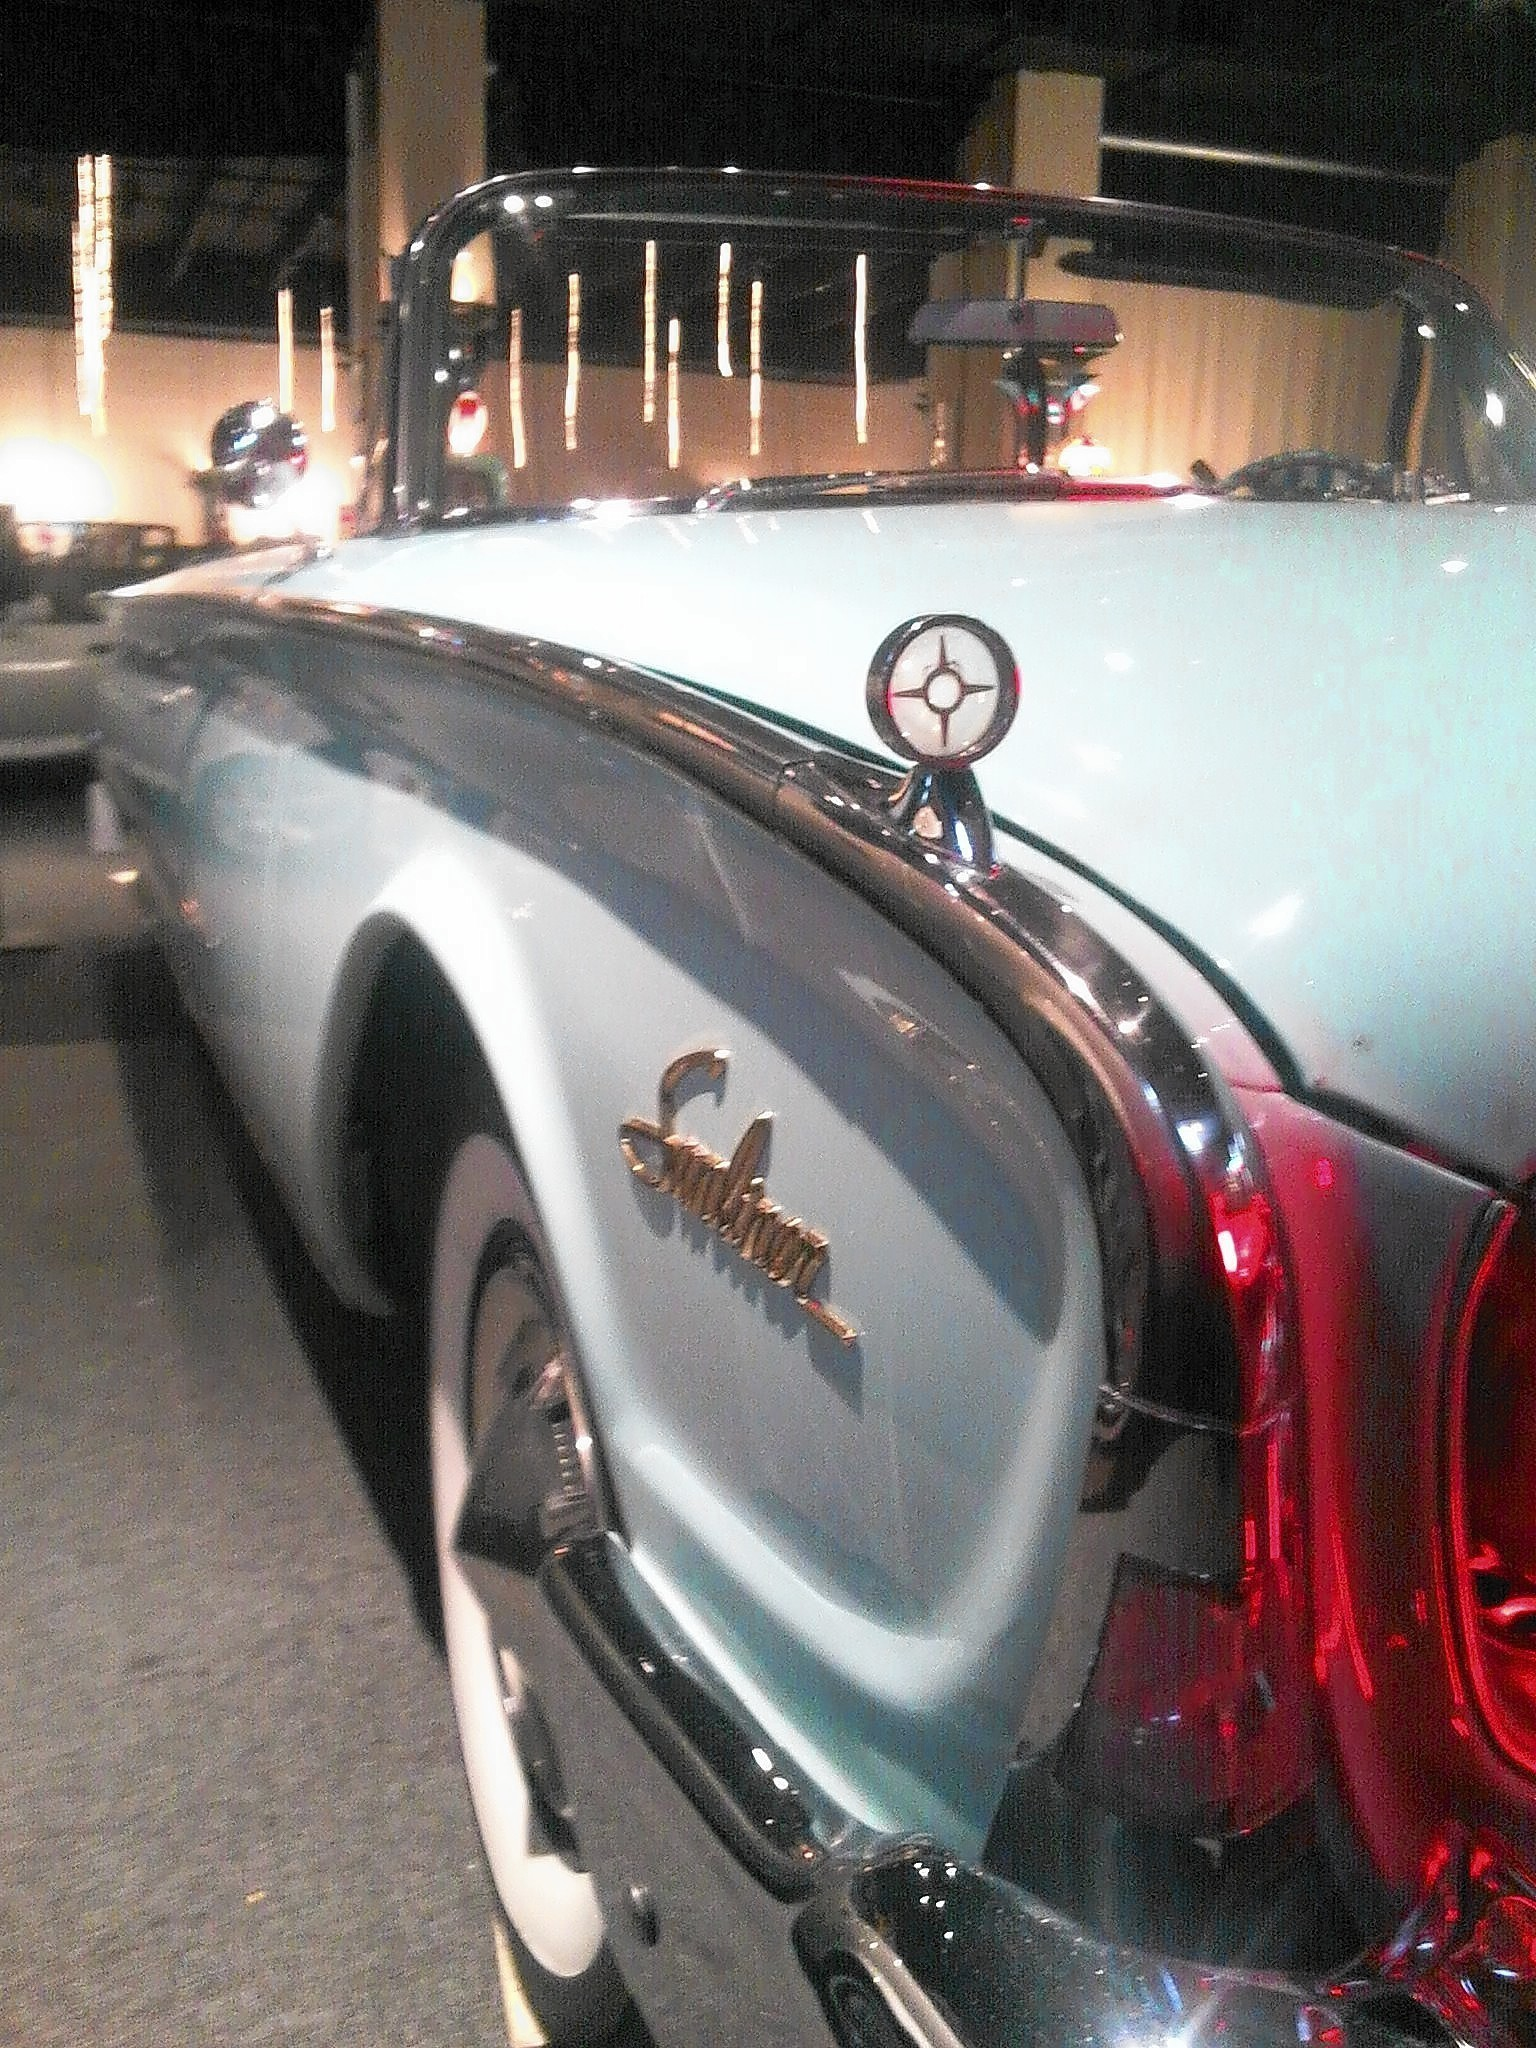 ragtops motorcars museum west palm beach offers a look at classic cars chicago tribune. Black Bedroom Furniture Sets. Home Design Ideas